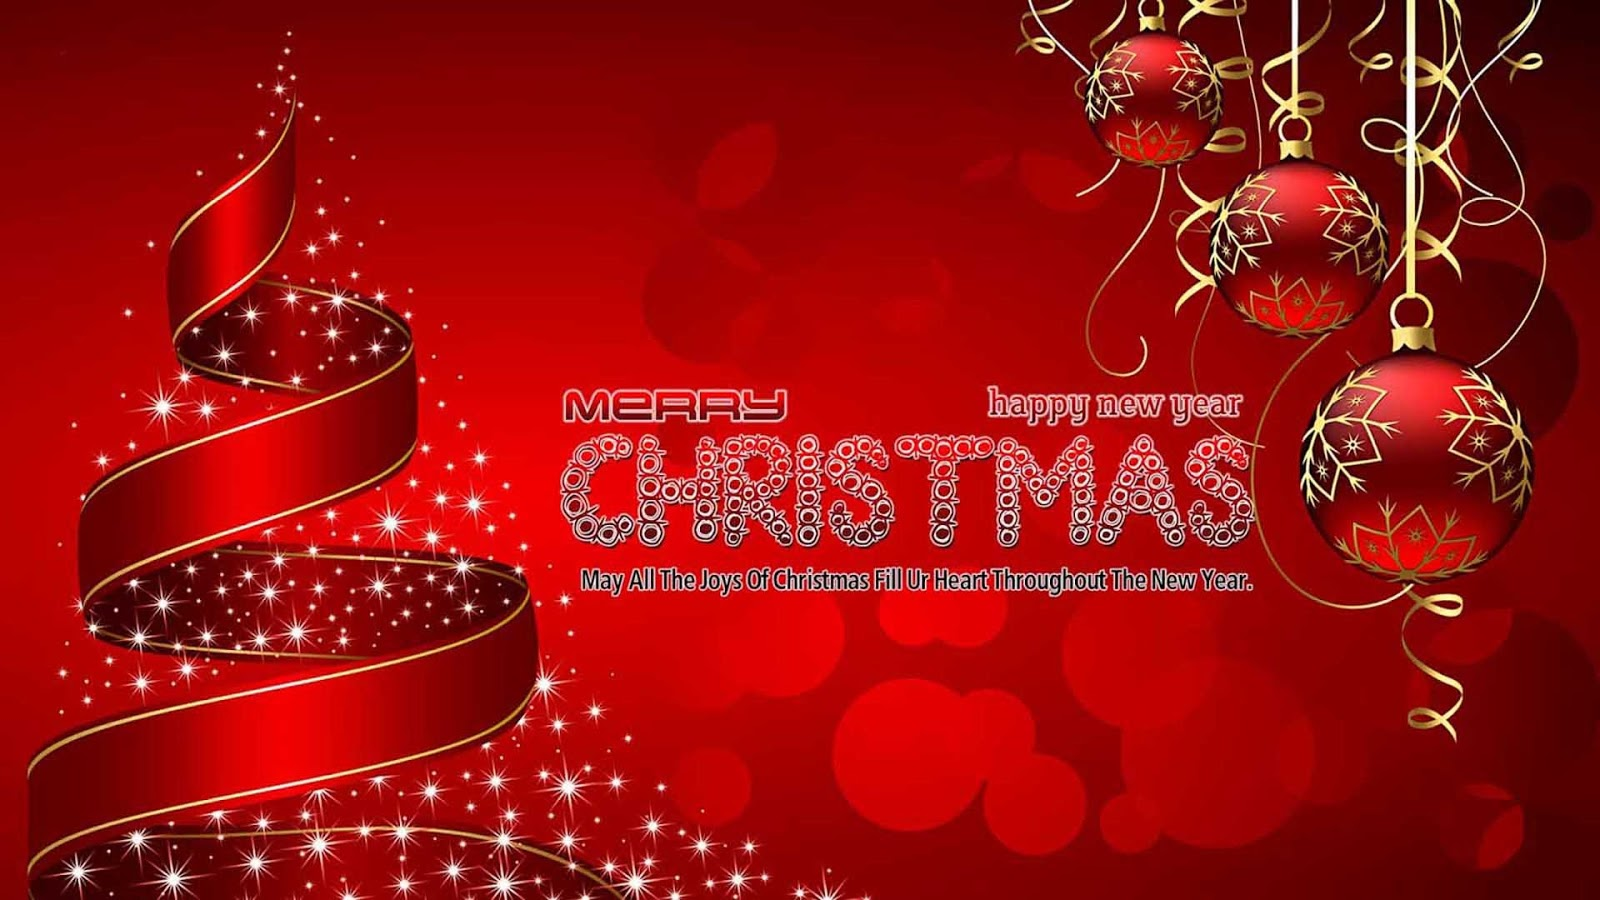 25 hd wallpapers of merry christmas 2017 happy